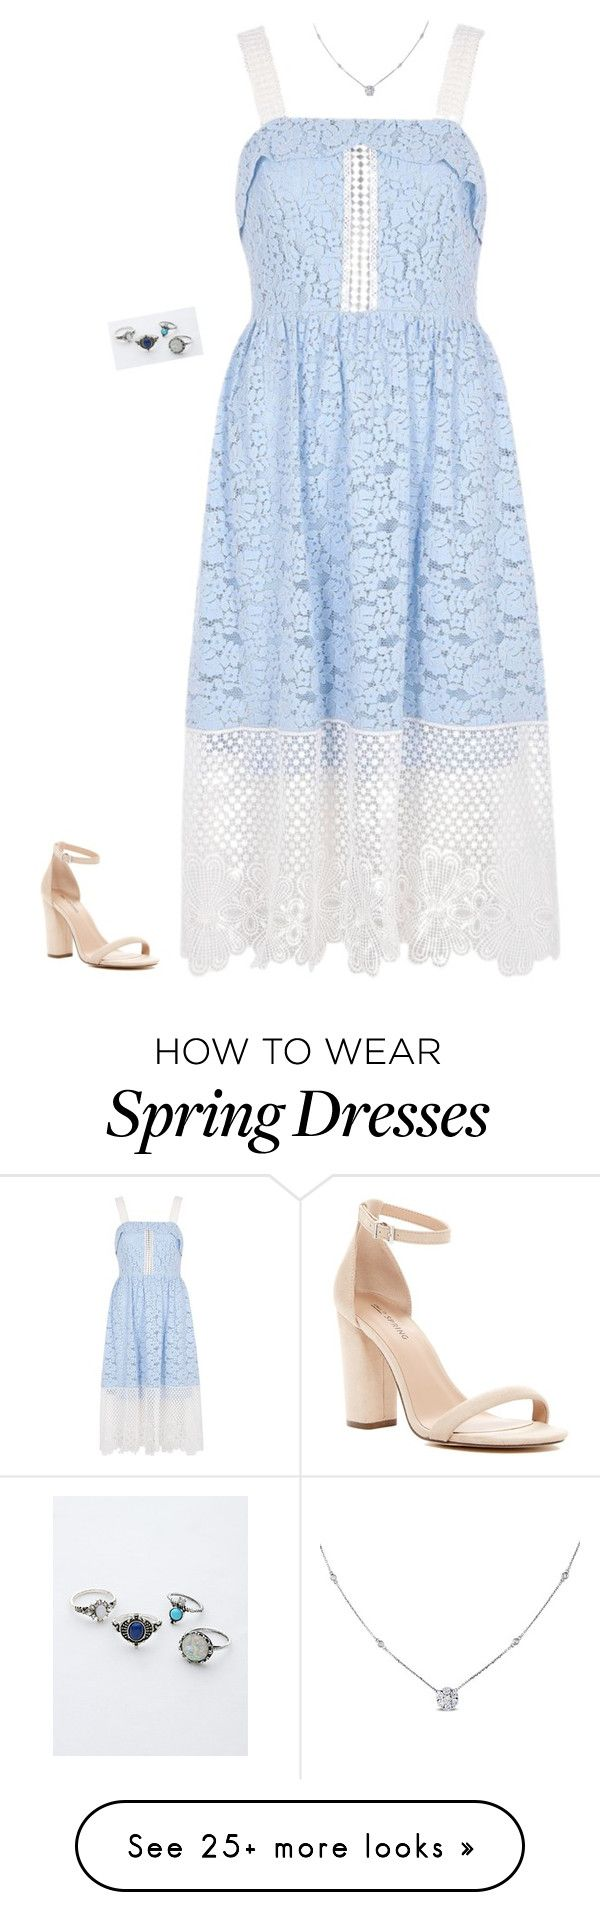 """""""Untitled #437"""" by jessiemt2 on Polyvore featuring River Island, Call it SPRING and Ice"""